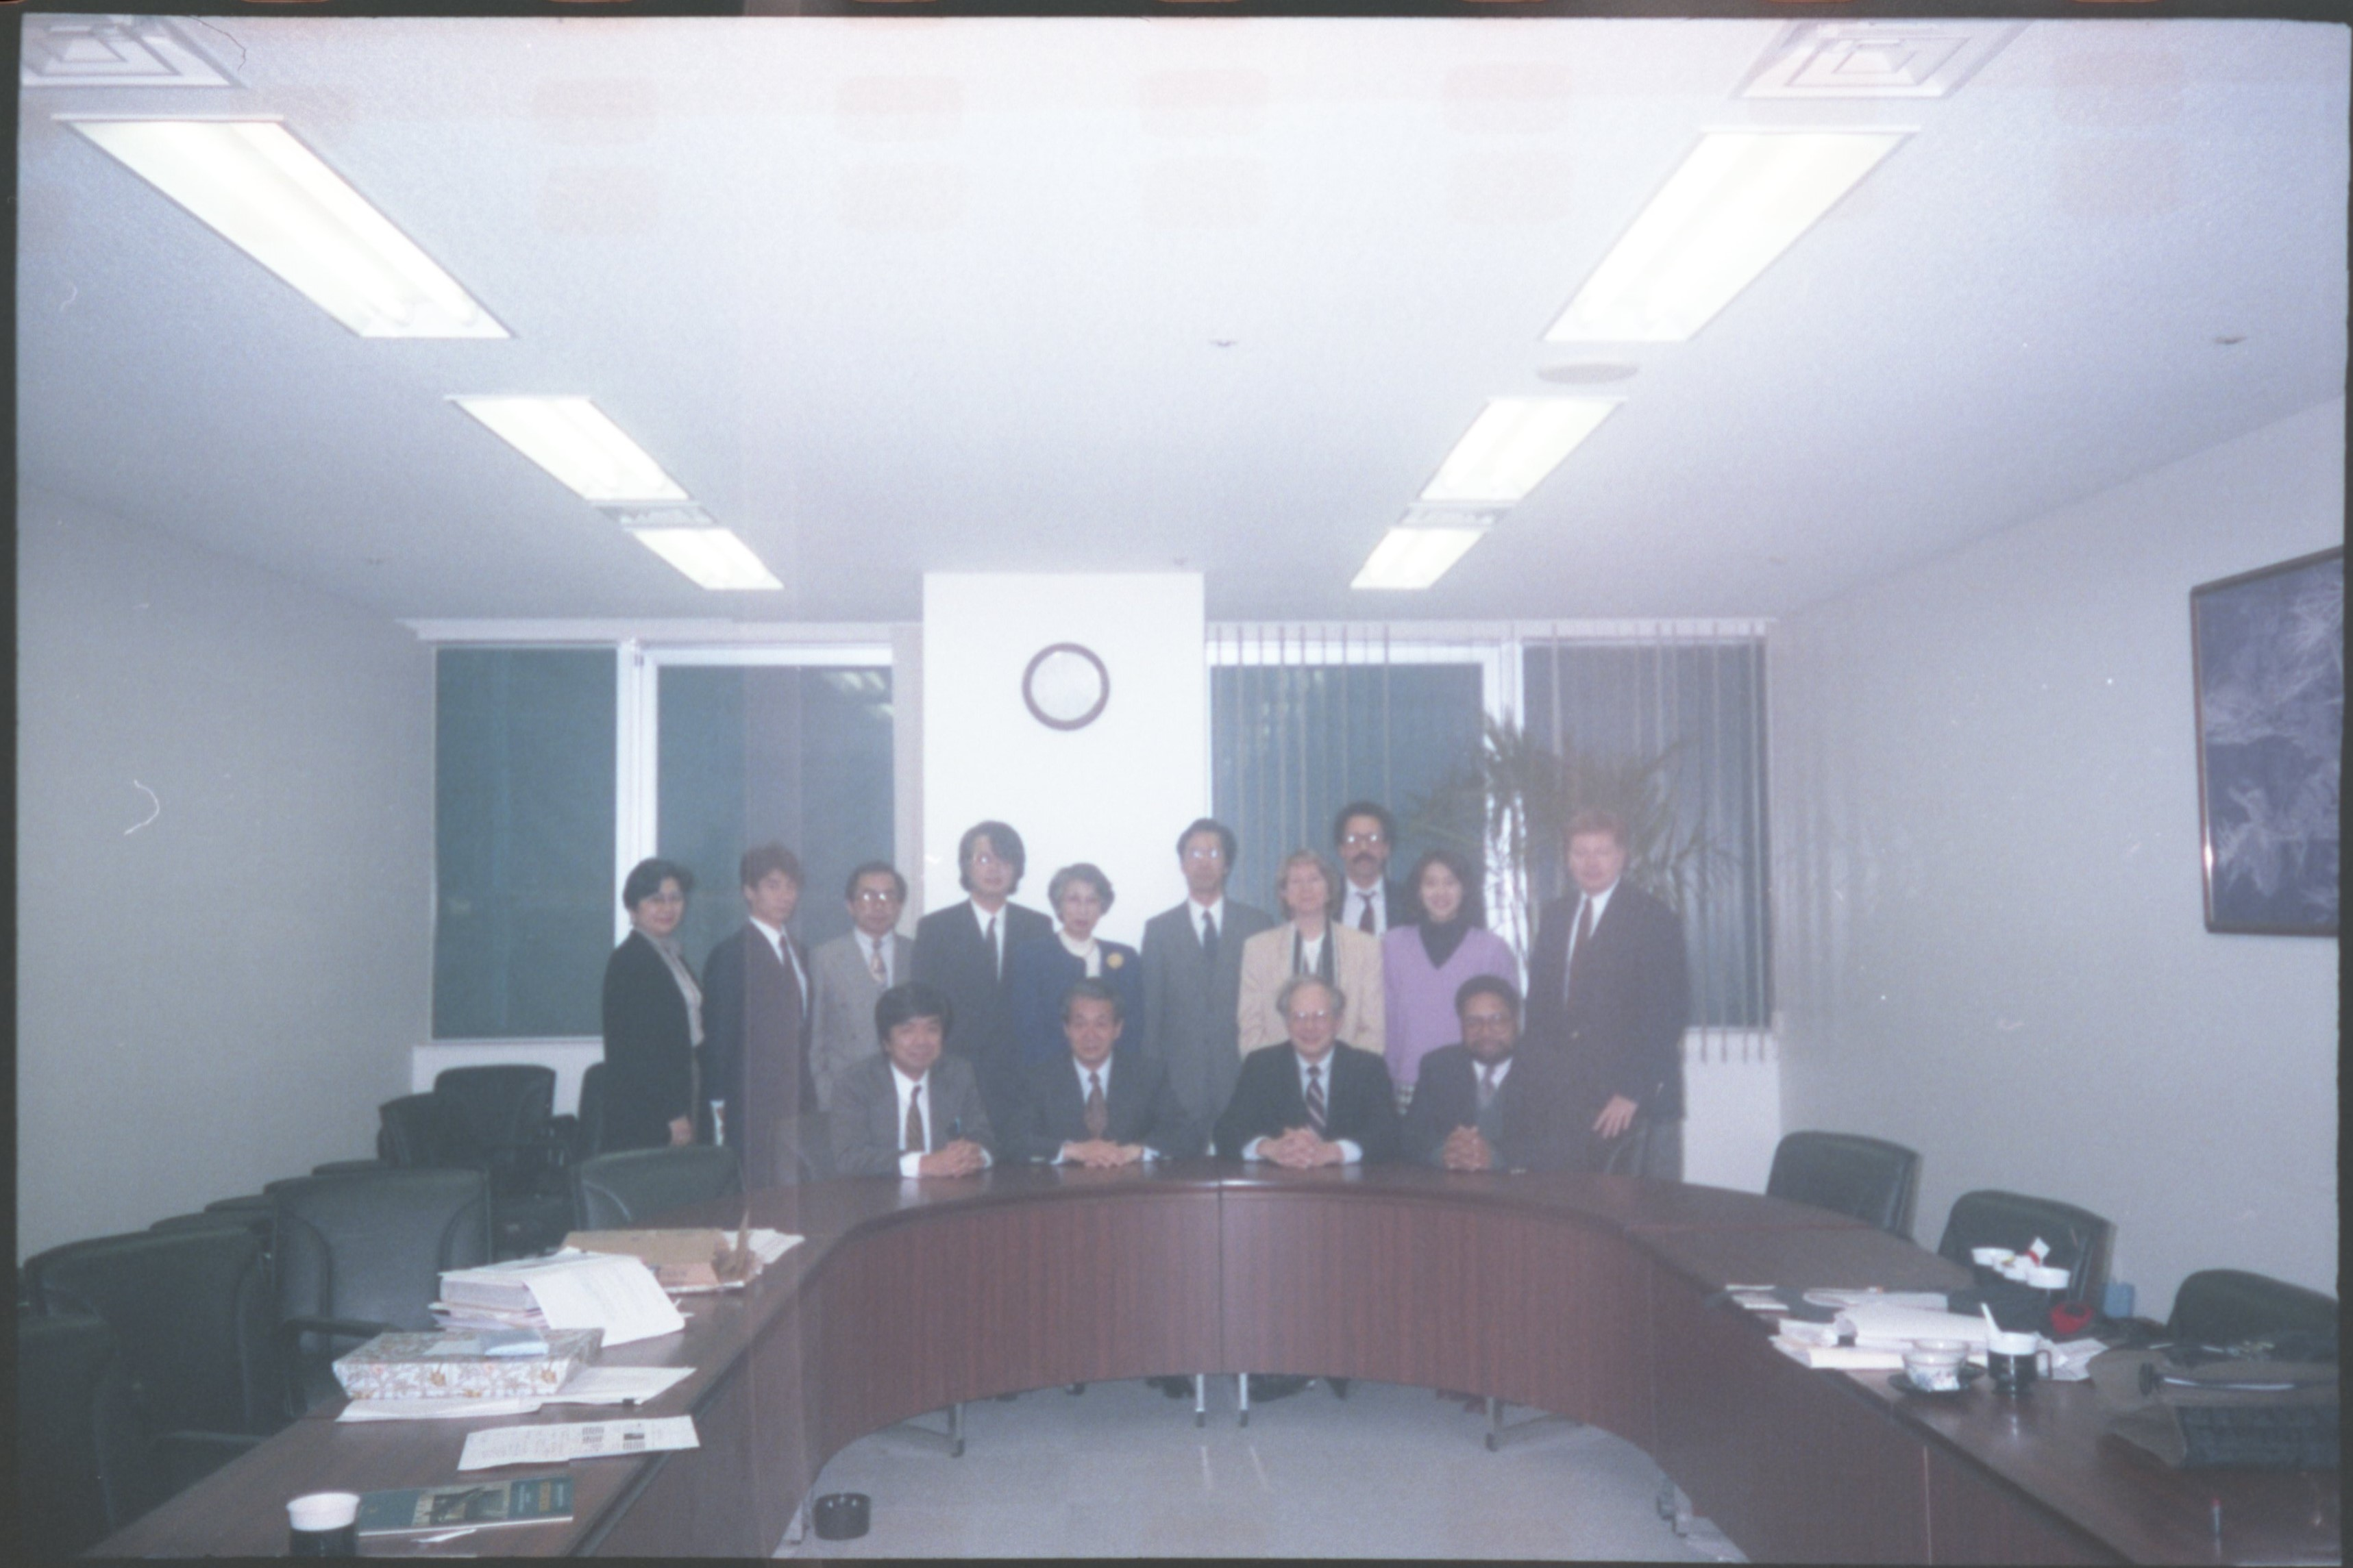 Lonnie G. Bunch, Harold Closter, and National Museum of American History staff in Japan for the exhi